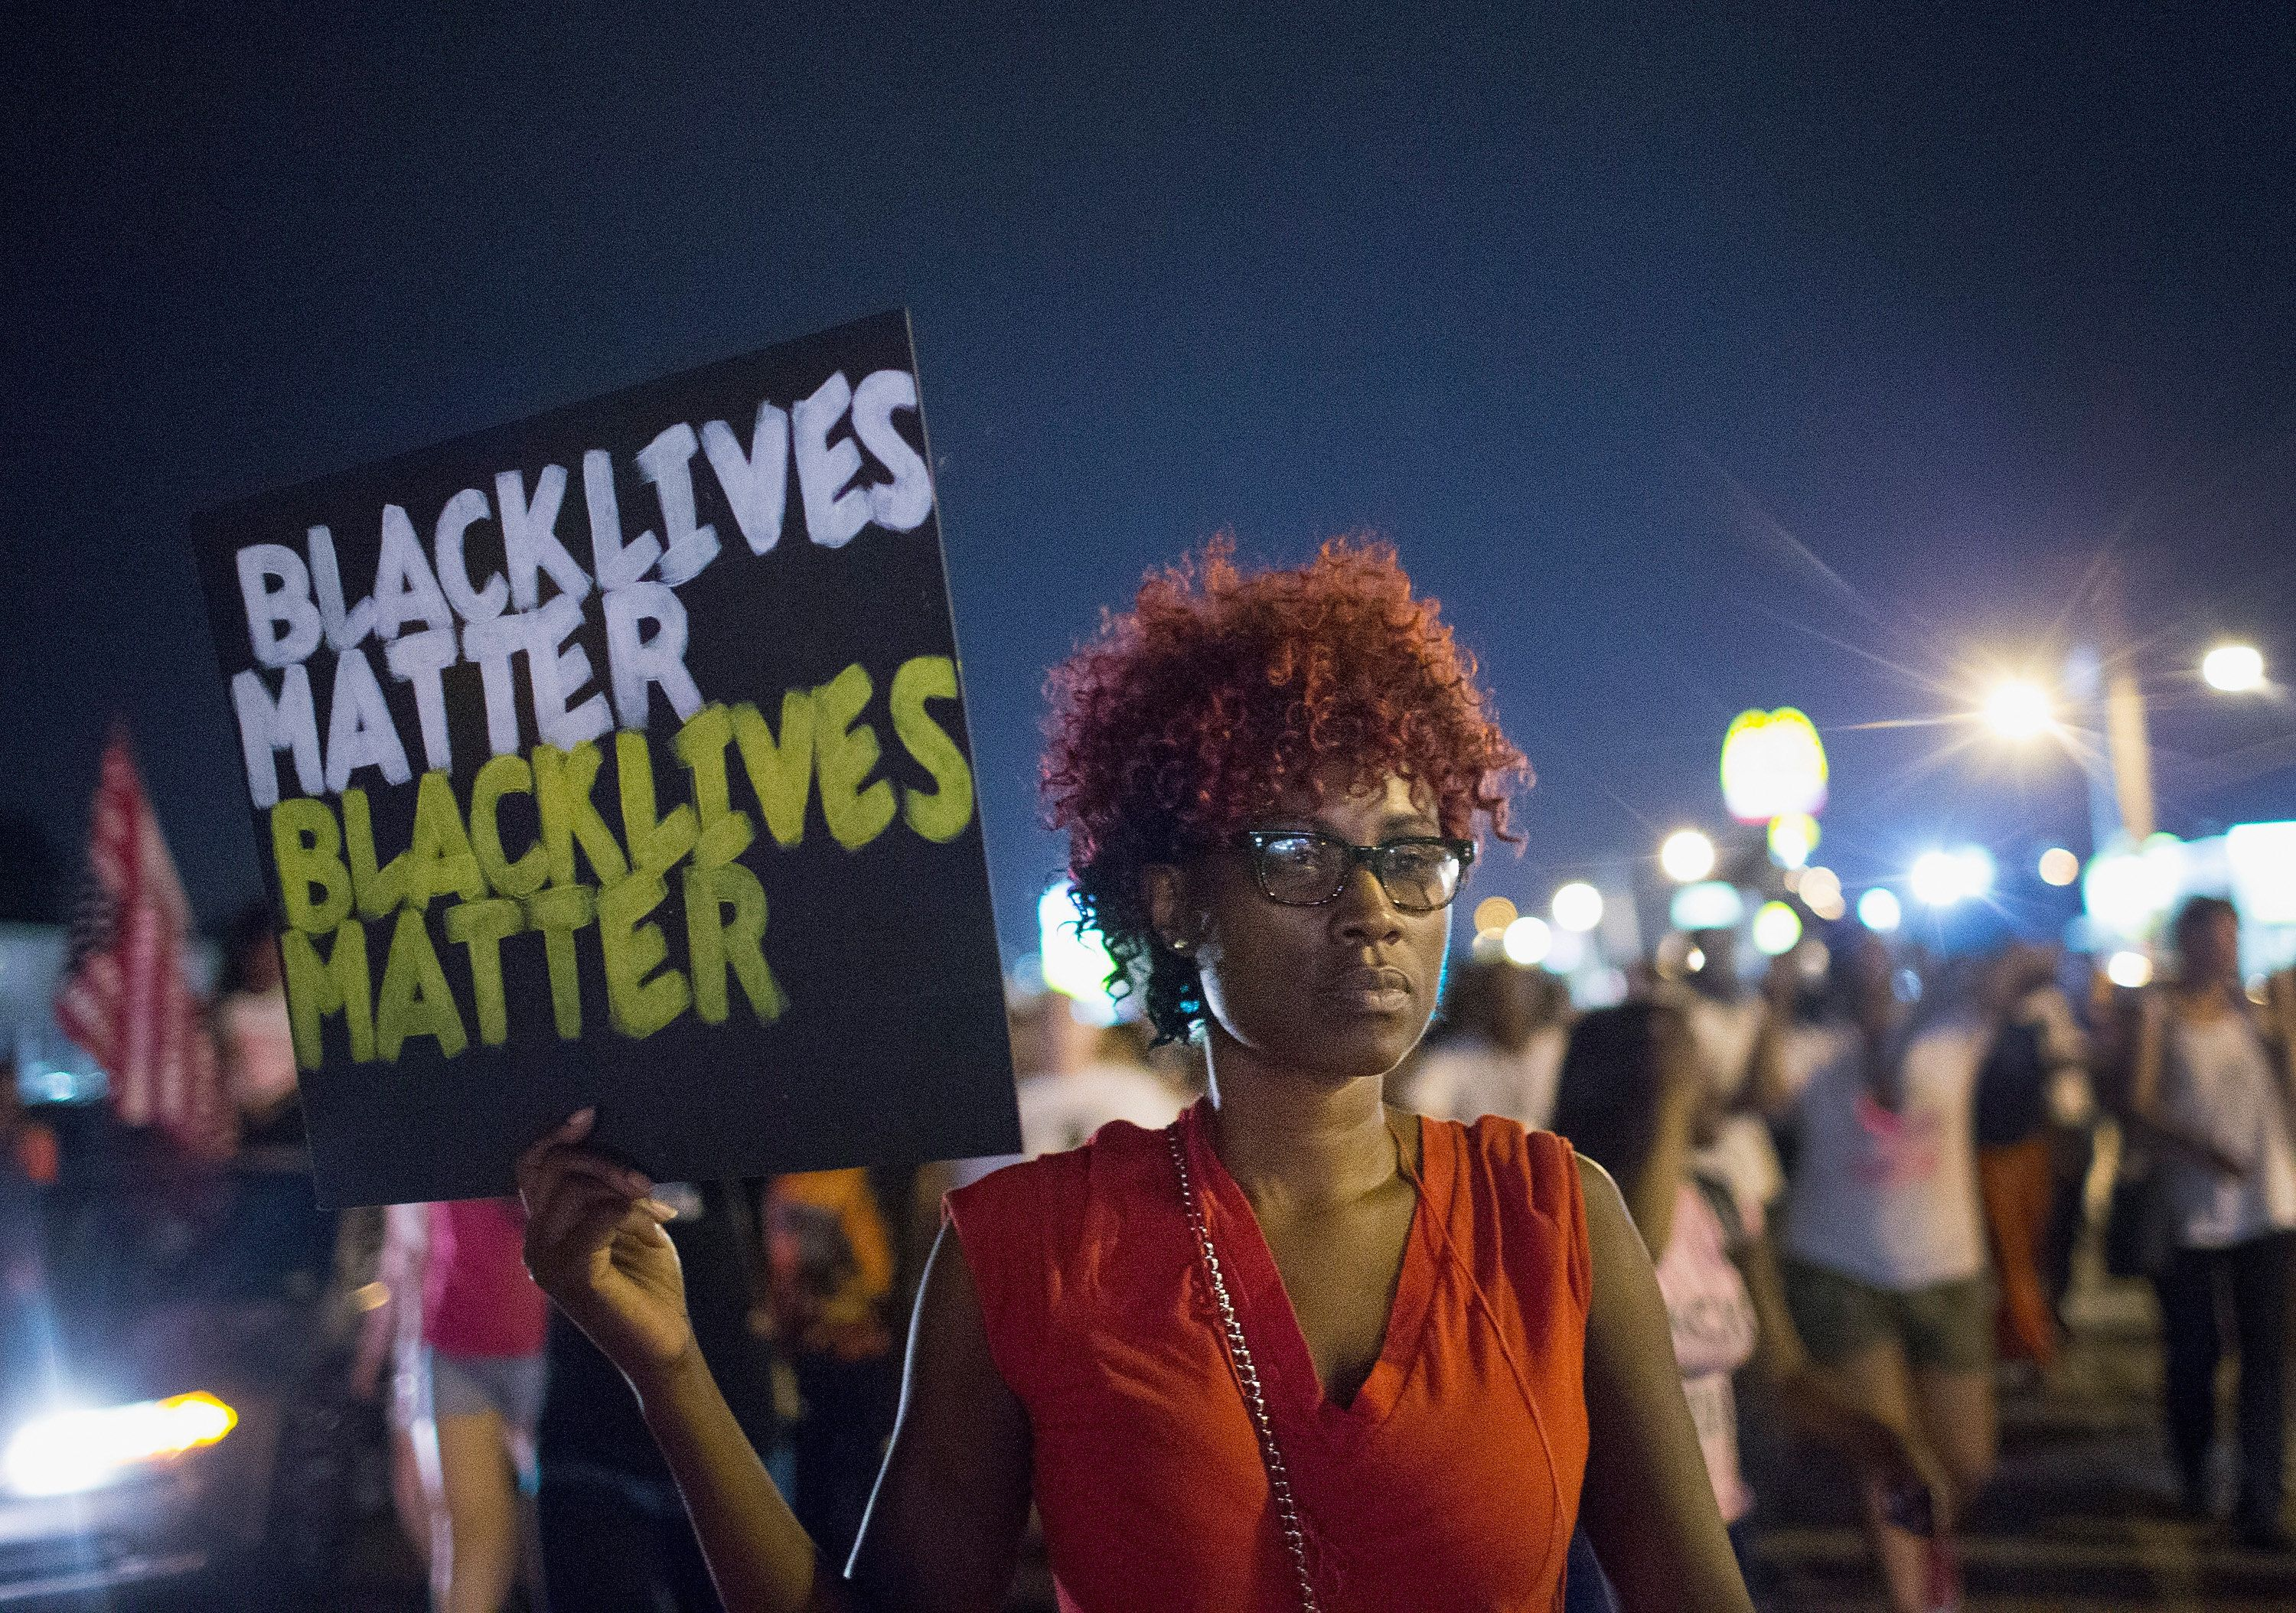 FERGUSON, MO - AUGUST 08:  Demonstrators march to mark the first anniversary of the death of Michael Brown on August 8, 2015 in Ferguson, Missouri. Brown, an unarmed black teenager, was shot and killed by a Ferguson police officer on August 9, 2014. Brown's death sparked months of sometimes violent protests in Ferguson and drew nationwide focus on police treatment of black suspects.  (Photo by Scott Olson/Getty Images)